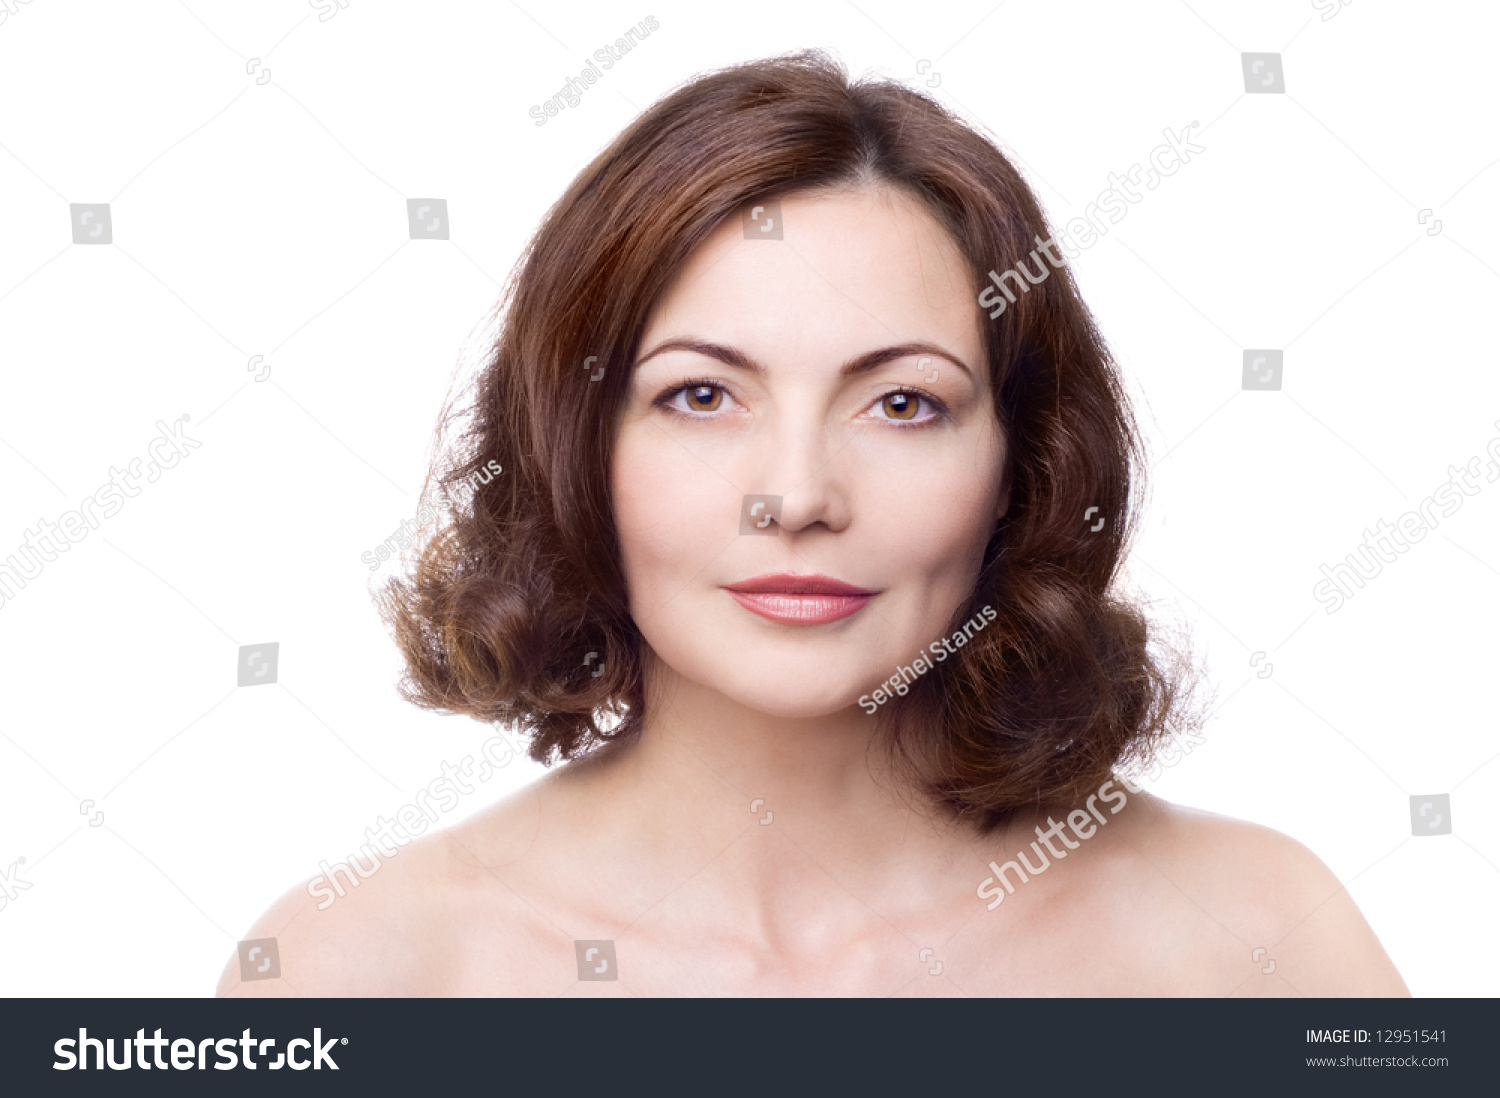 online dating web site for middle aged single woman Ruthie is 47 and one of the most attractive women - of any age when she last registered with an online dating site she was is because middle-aged men are.